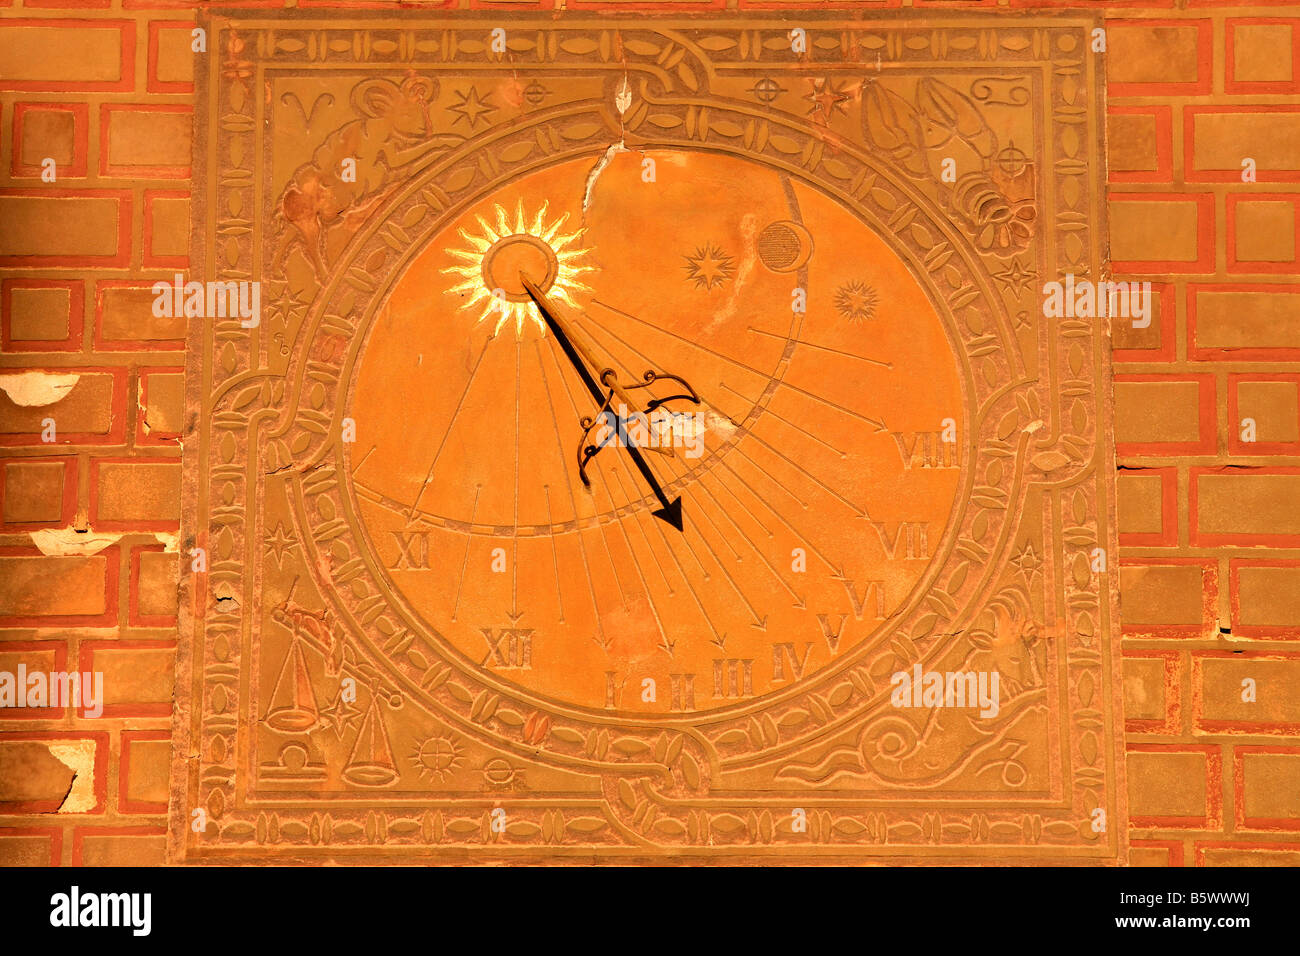 Sundial in the Old Town, Warsaw, Poland, Europe - Stock Image